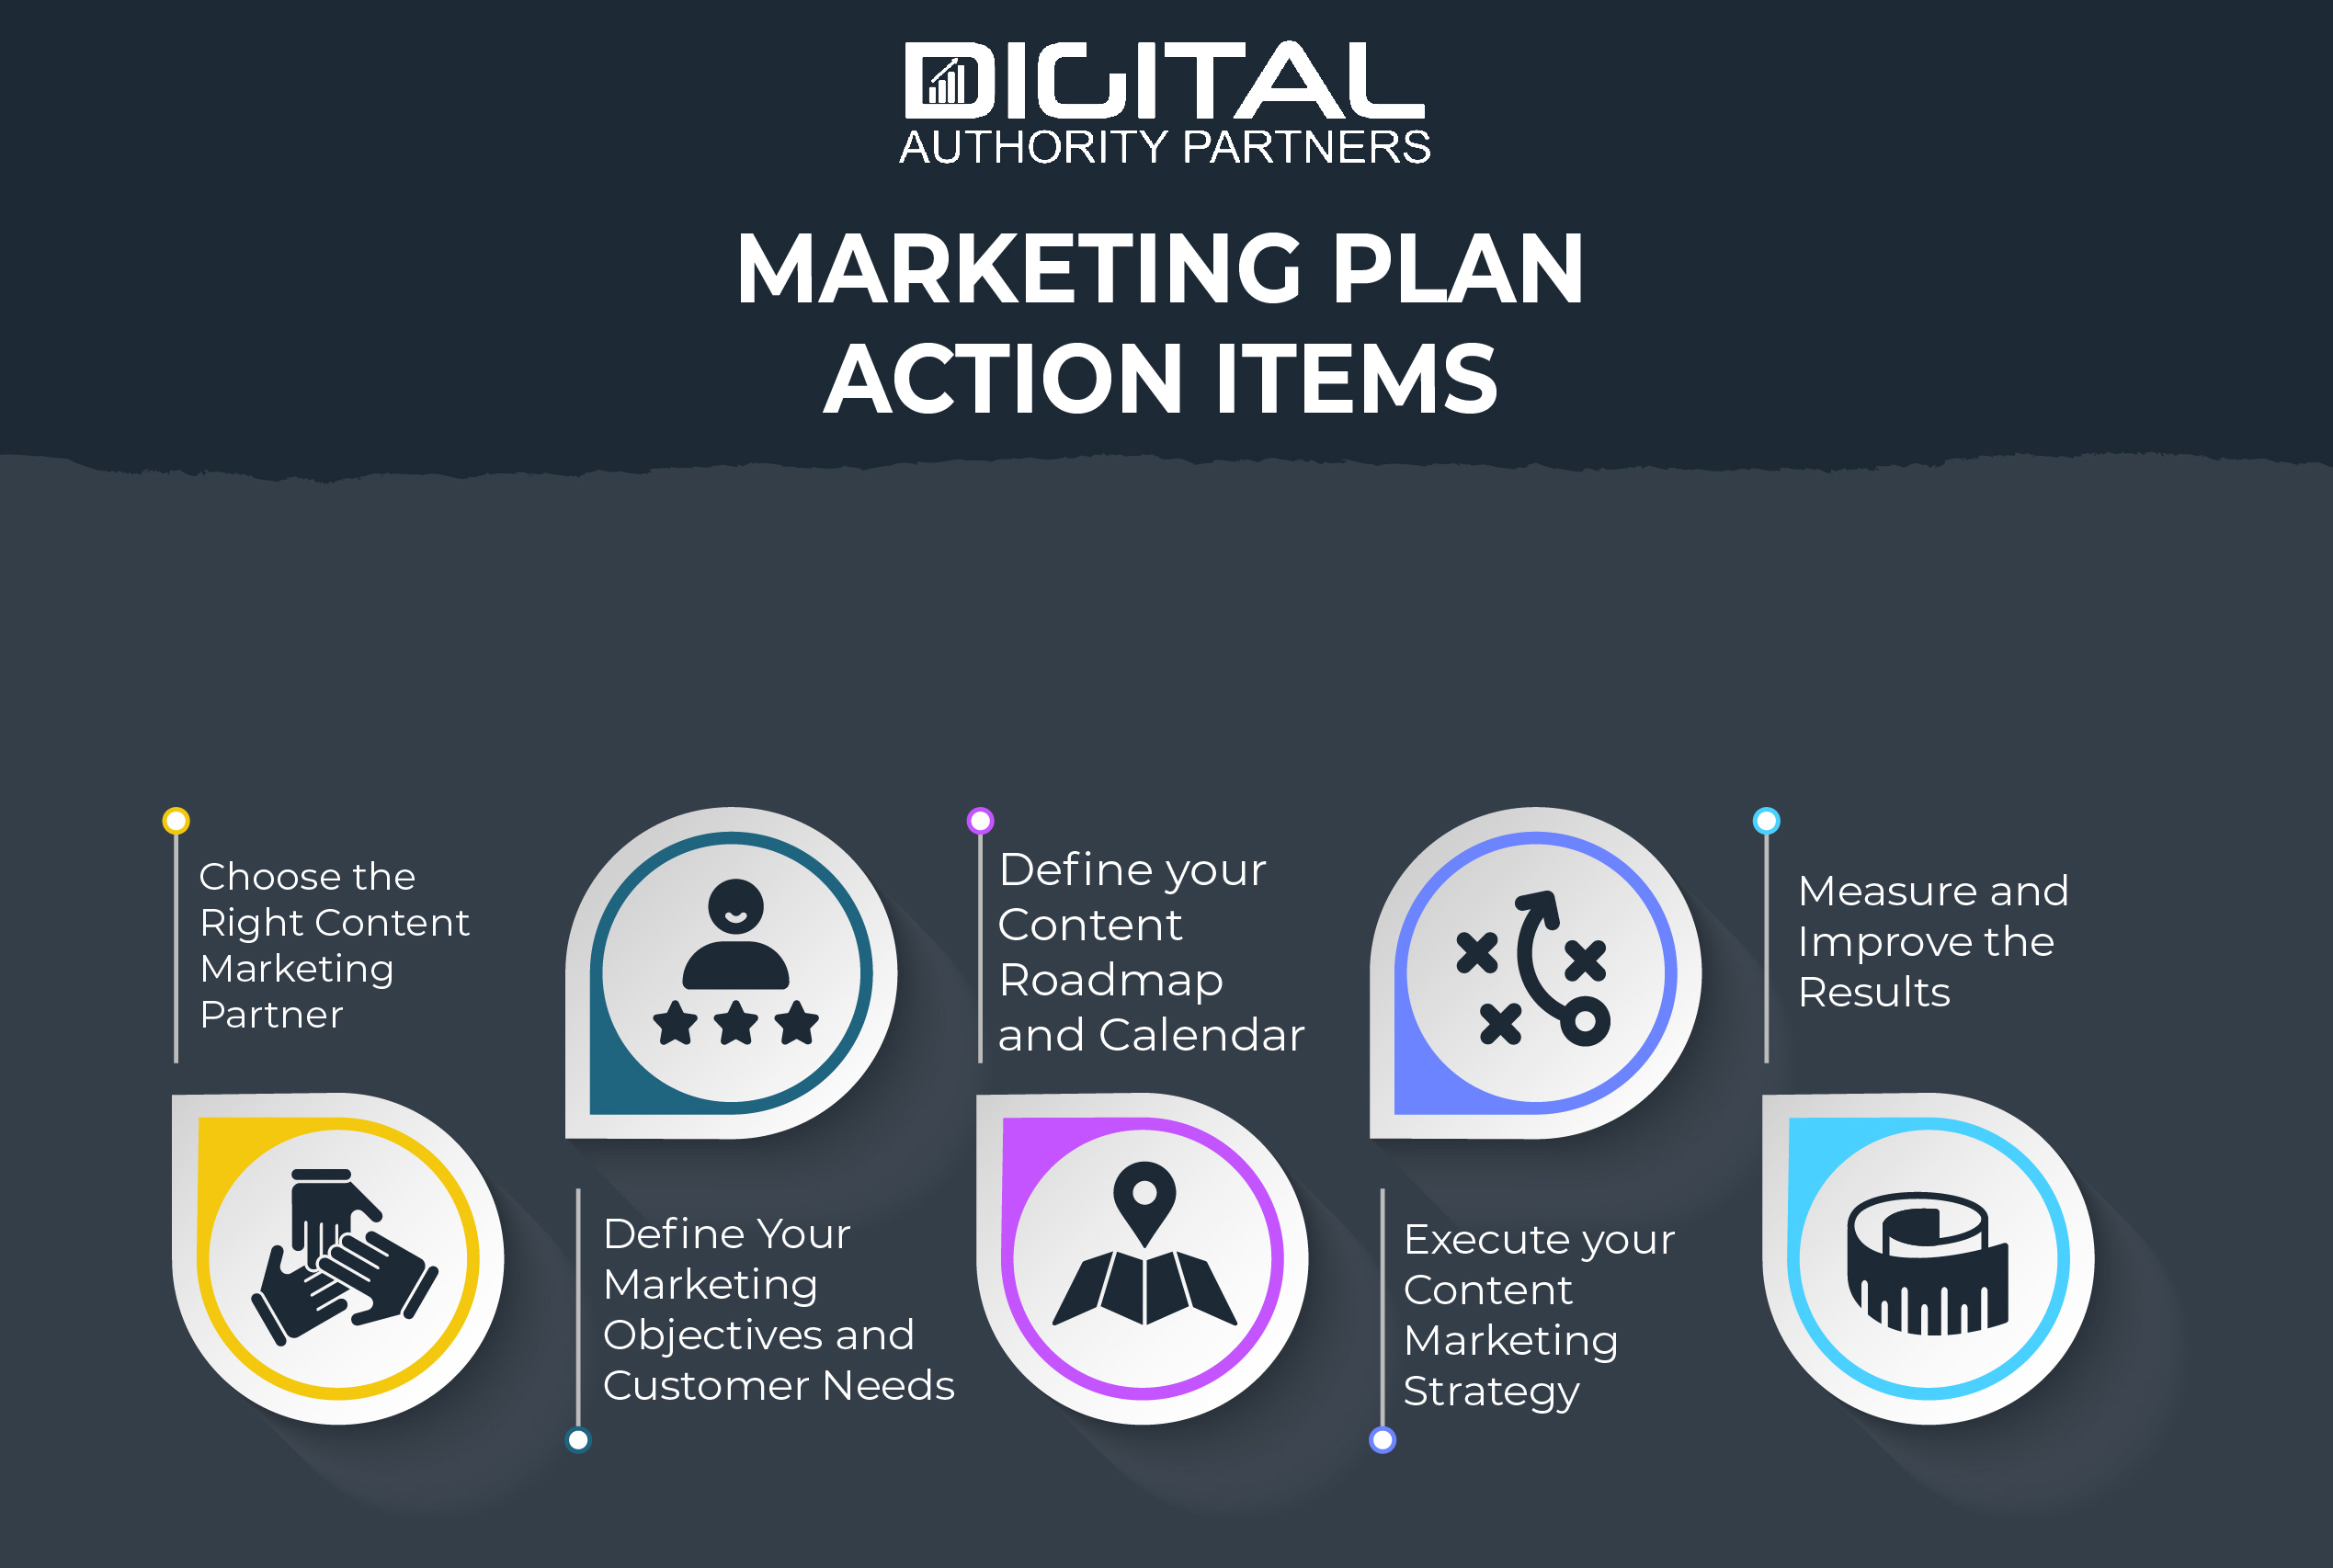 Graphic explaining the elements of a marketing plan